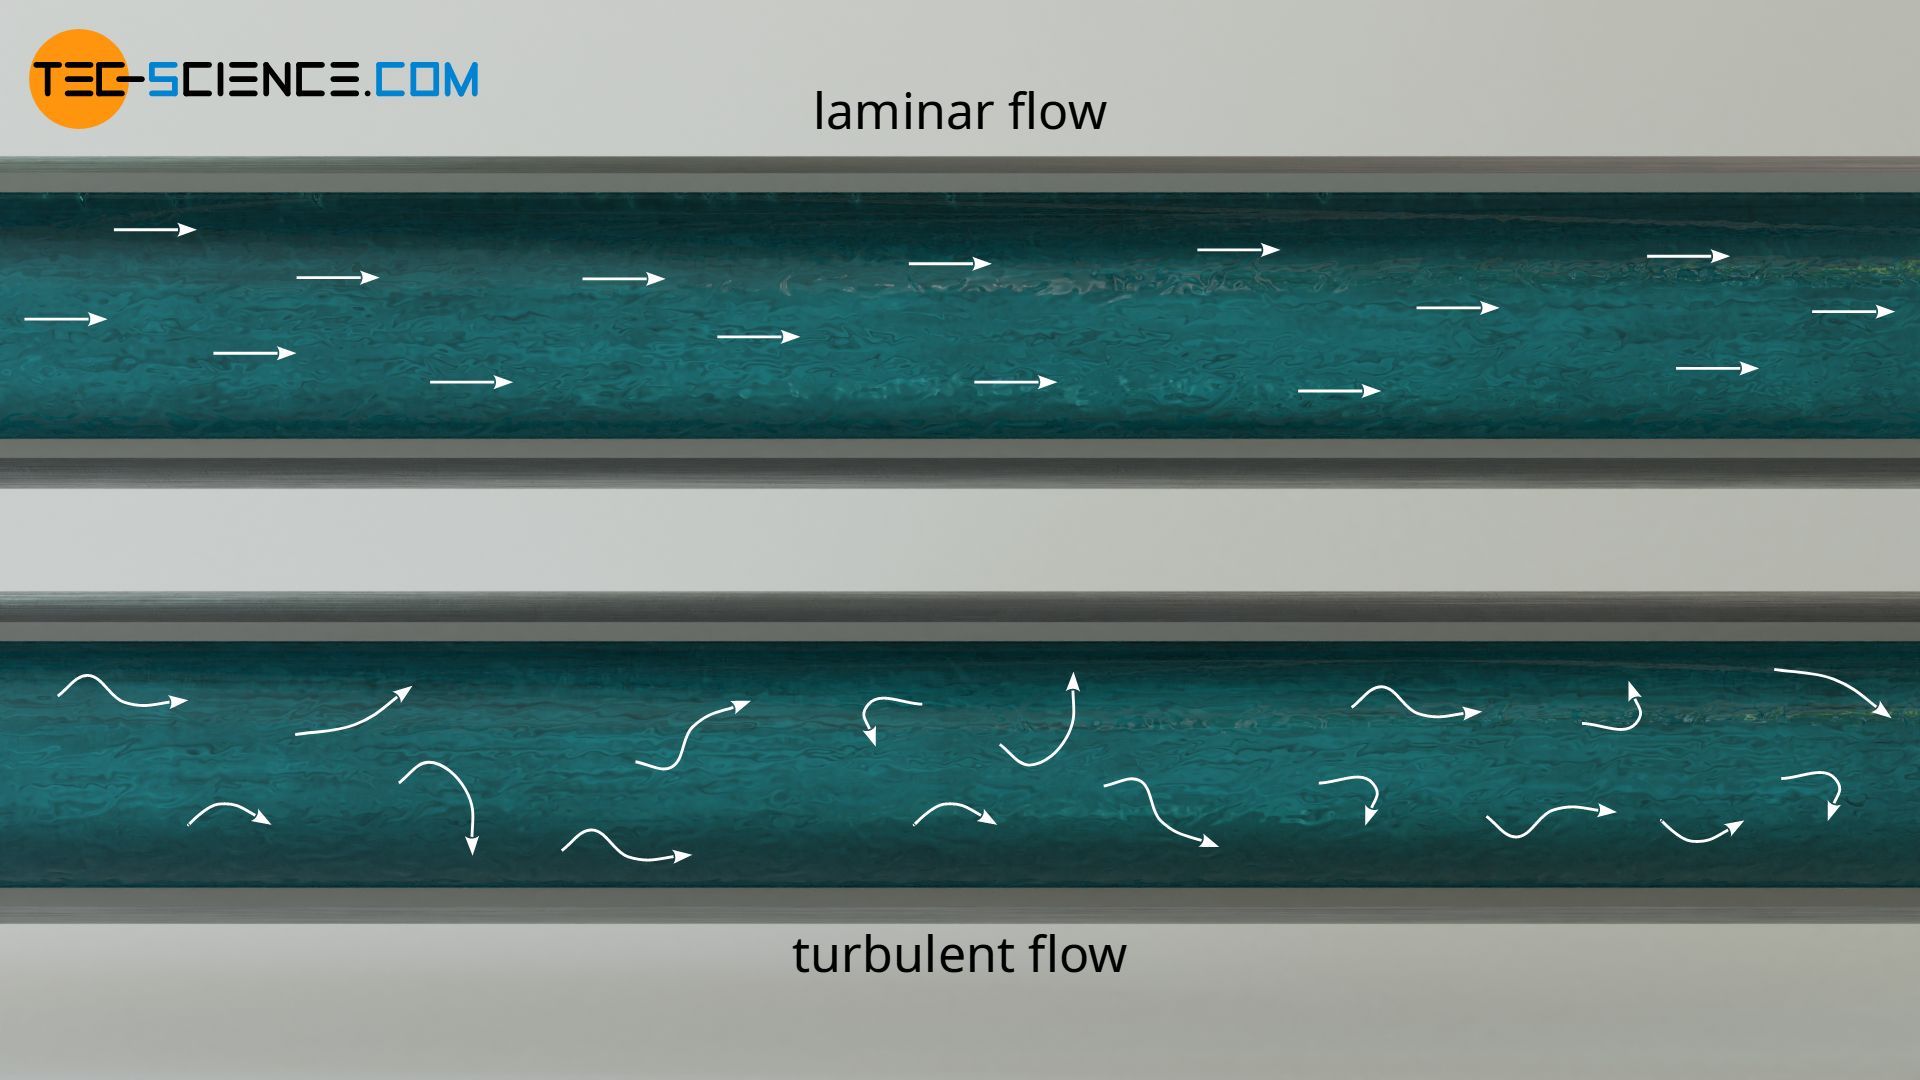 Laminar and turbulent flow in pipes